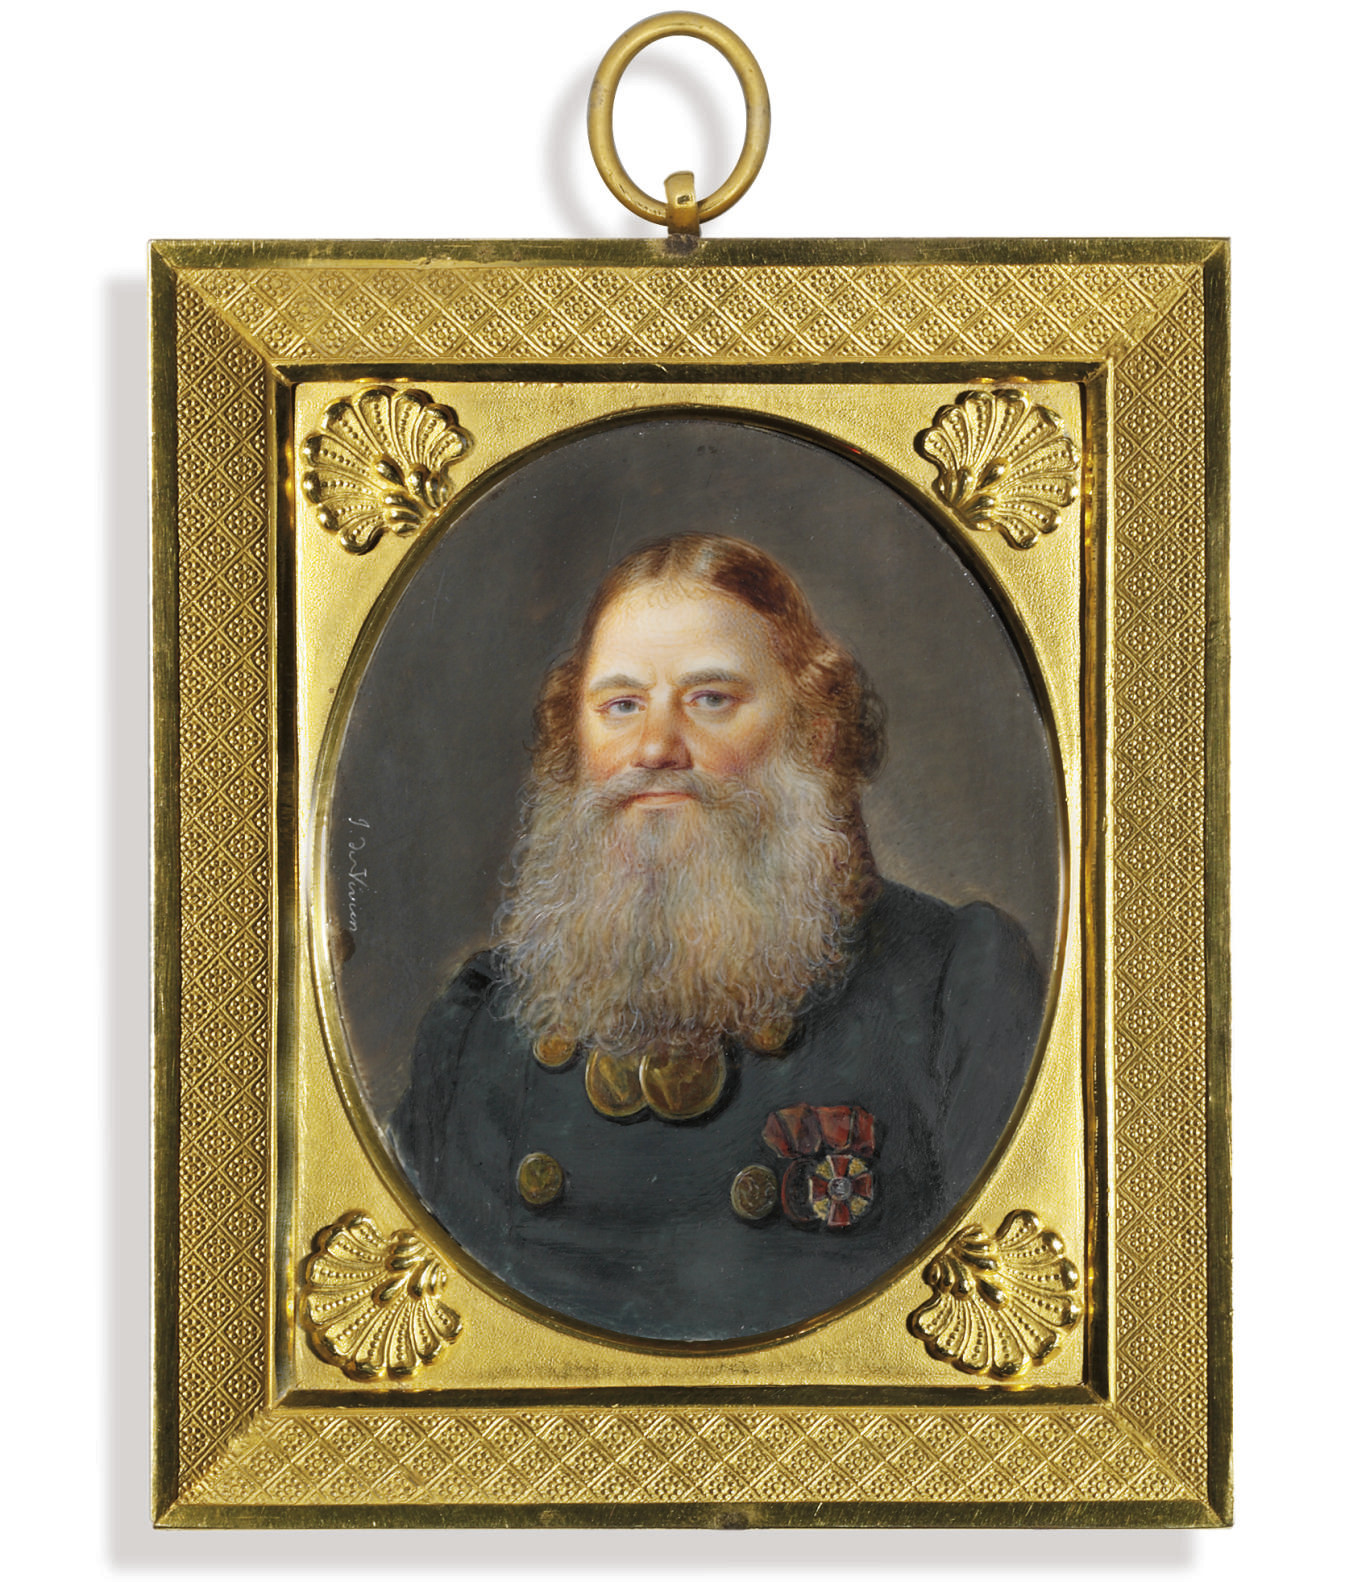 Ilya Ivanovich Baikov (1768-1838), in double-breasted loden green coat with gilt buttons, wearing the badges of the Imperial Russian Order of St. Anne (3rd class), the bronze medal for the Campaign of 1812 with the ribbon of St. Anne and, around his neck, two presentation medals for Zeal from Tsar Alexander I, long red hair and grey beard